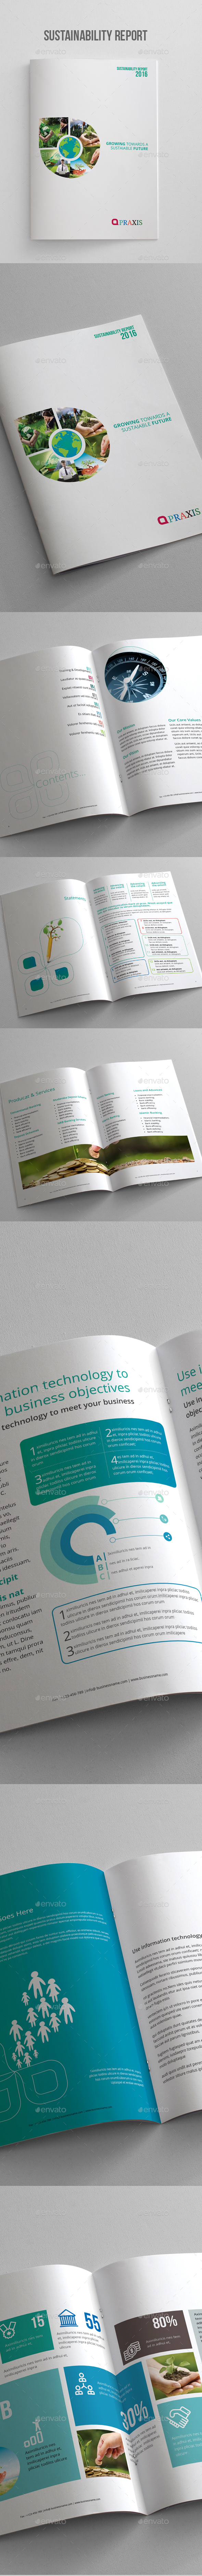 Sustainability Report Brochure - Corporate Business Cards